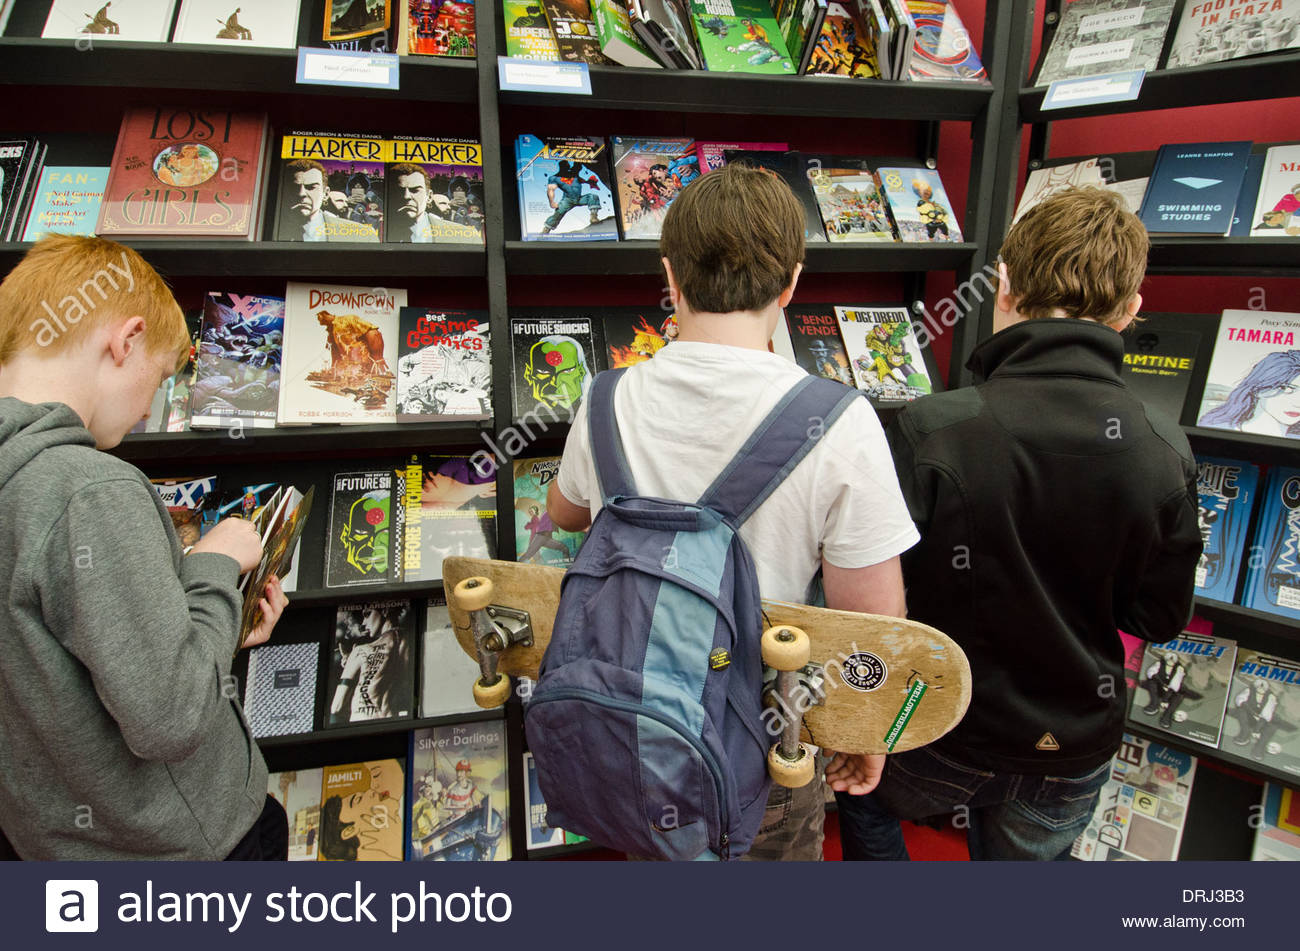 Young visitors of the Edinburgh International Book Festival browse comic books in the 'bookshop tent' - Stock Image